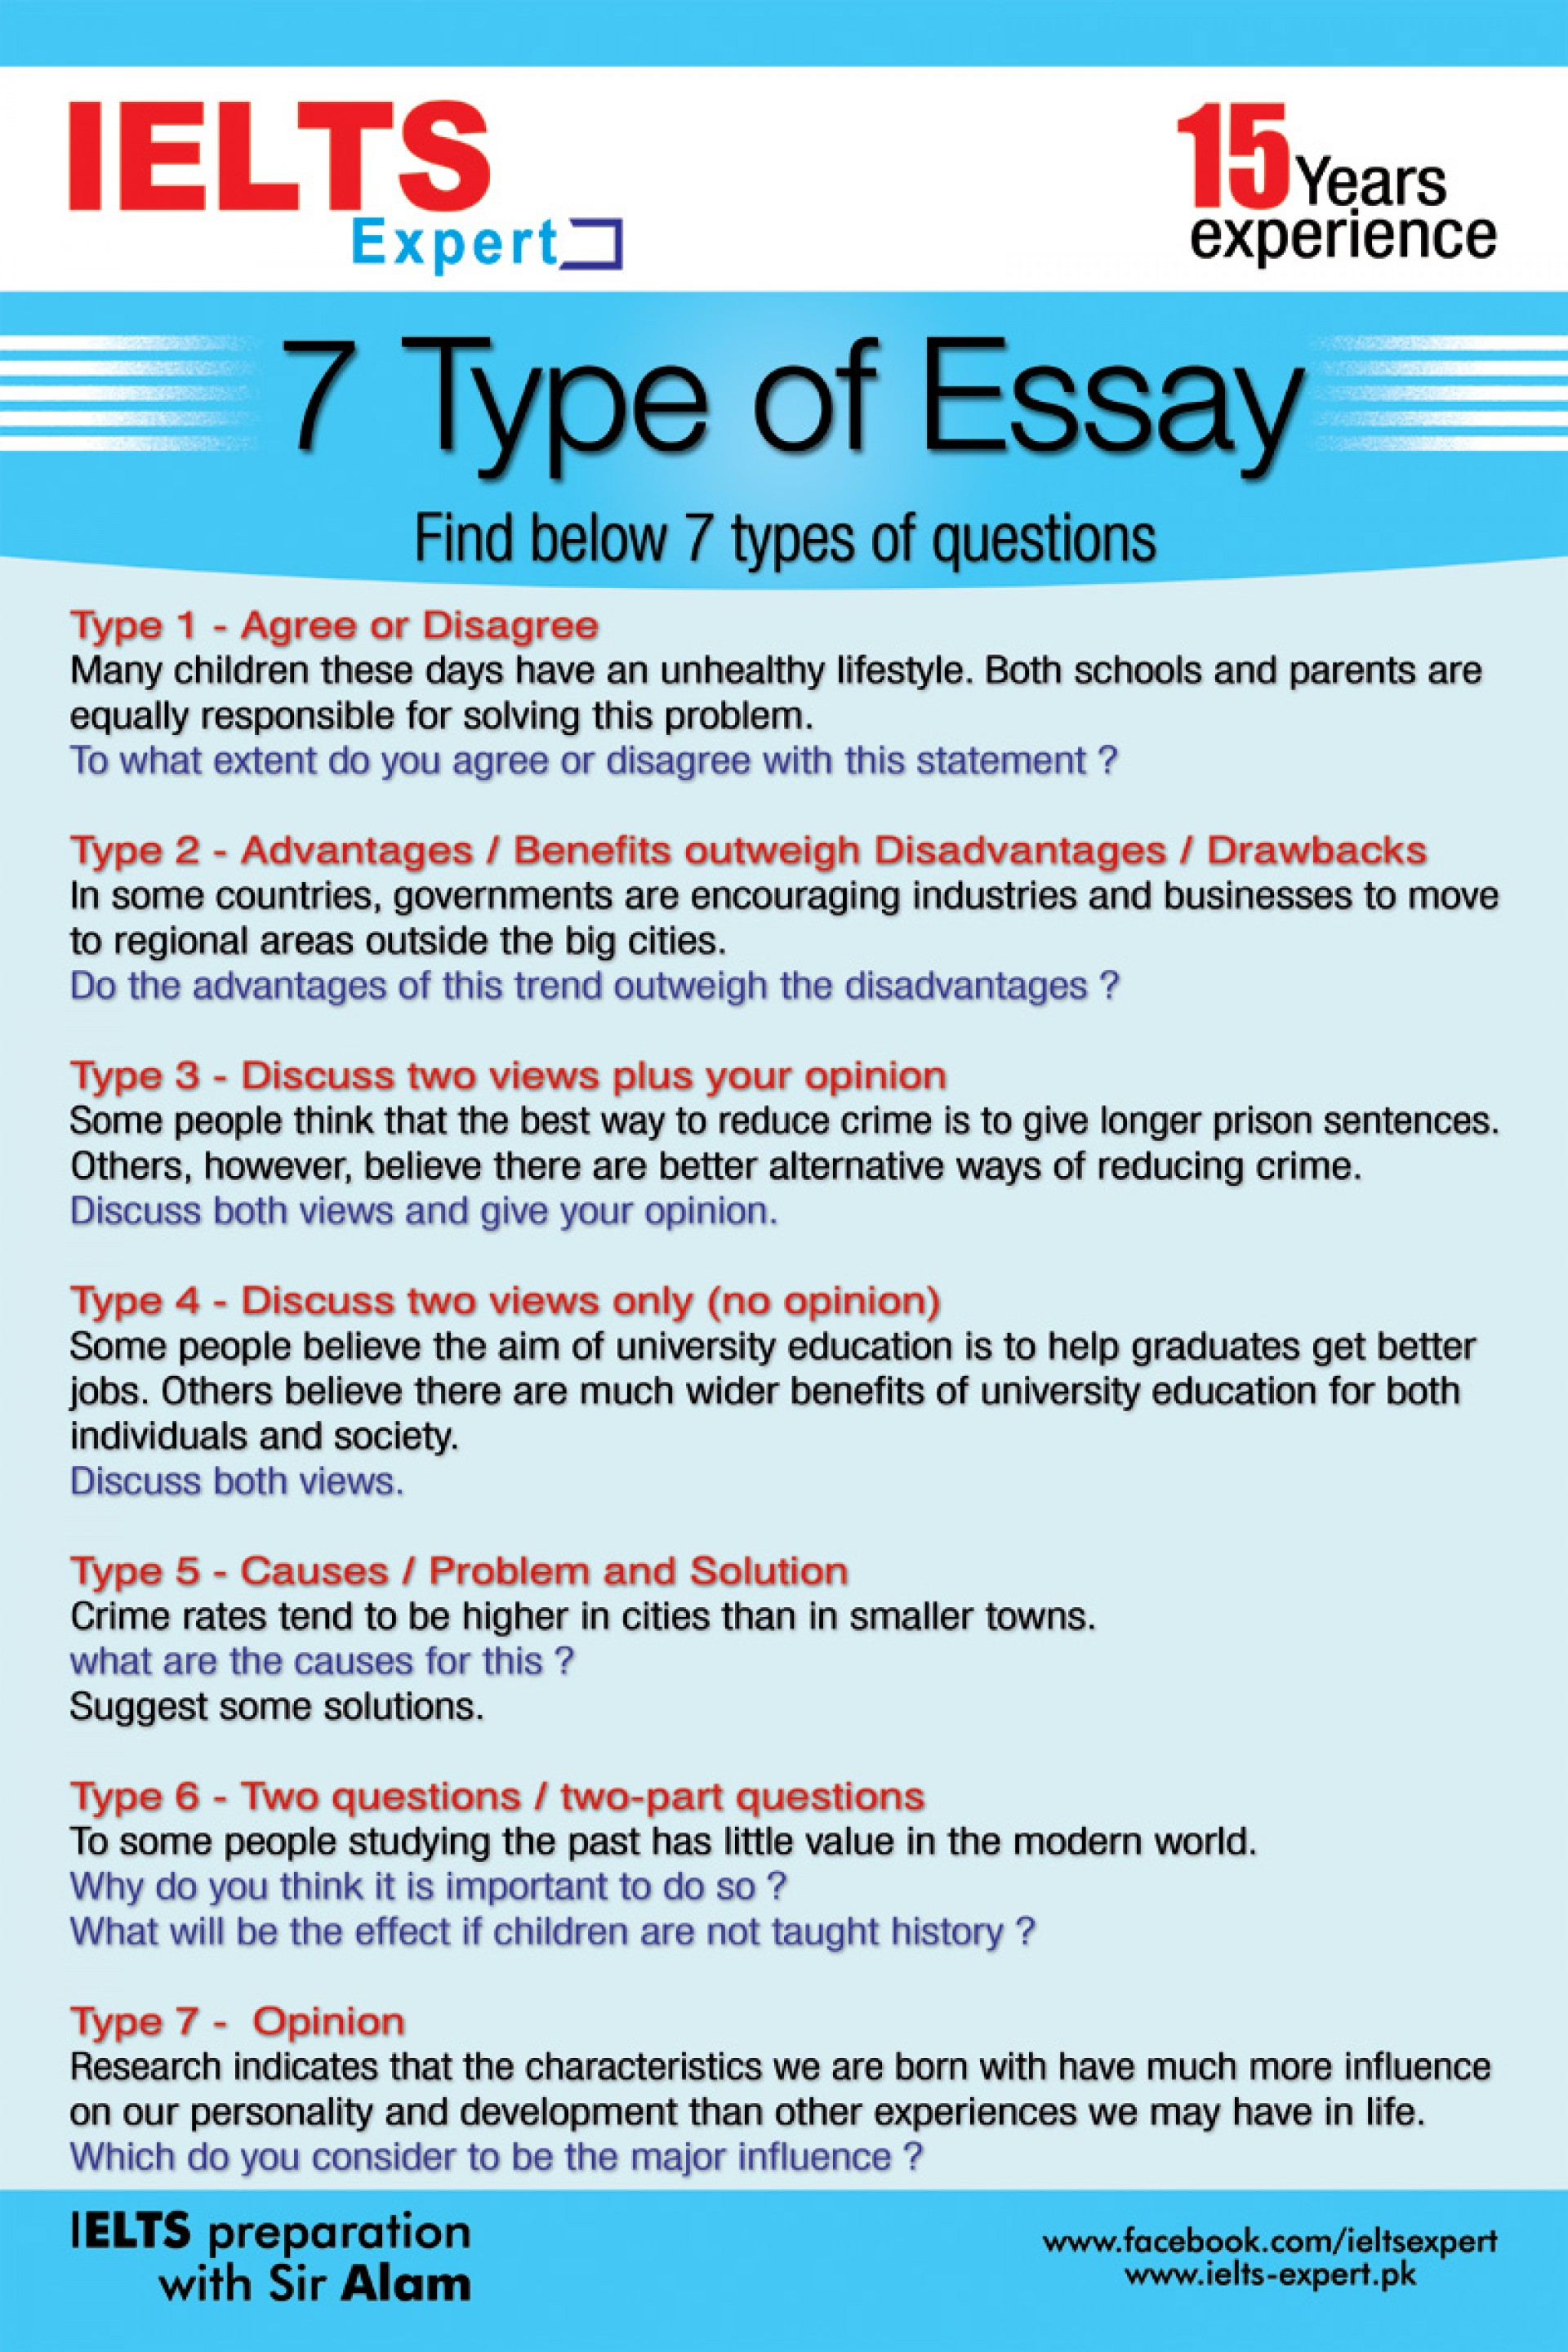 005 Essay Example Type An Online For Free Of Stirring Where Can I 1920